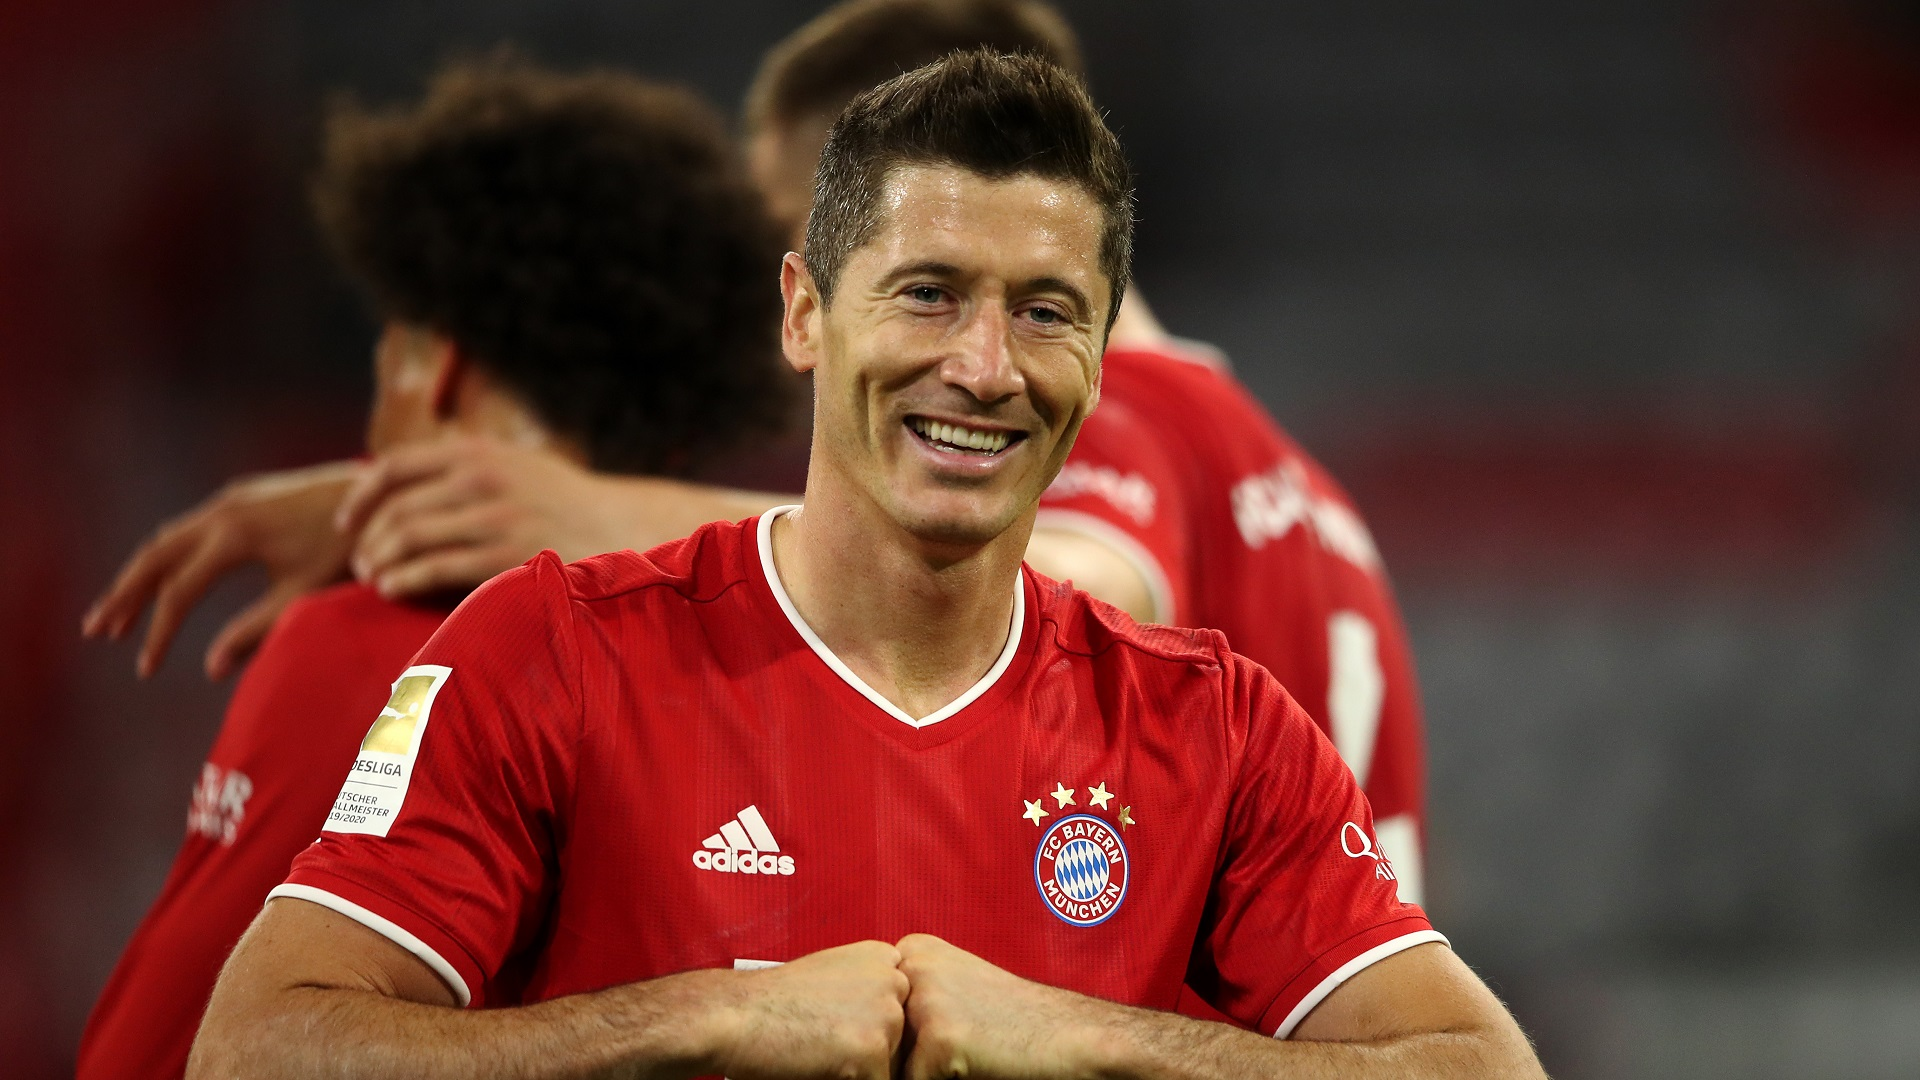 Lewandowski to be named European Footballer of the Year as Bayern star beats De Bruyne and Neuer to top award